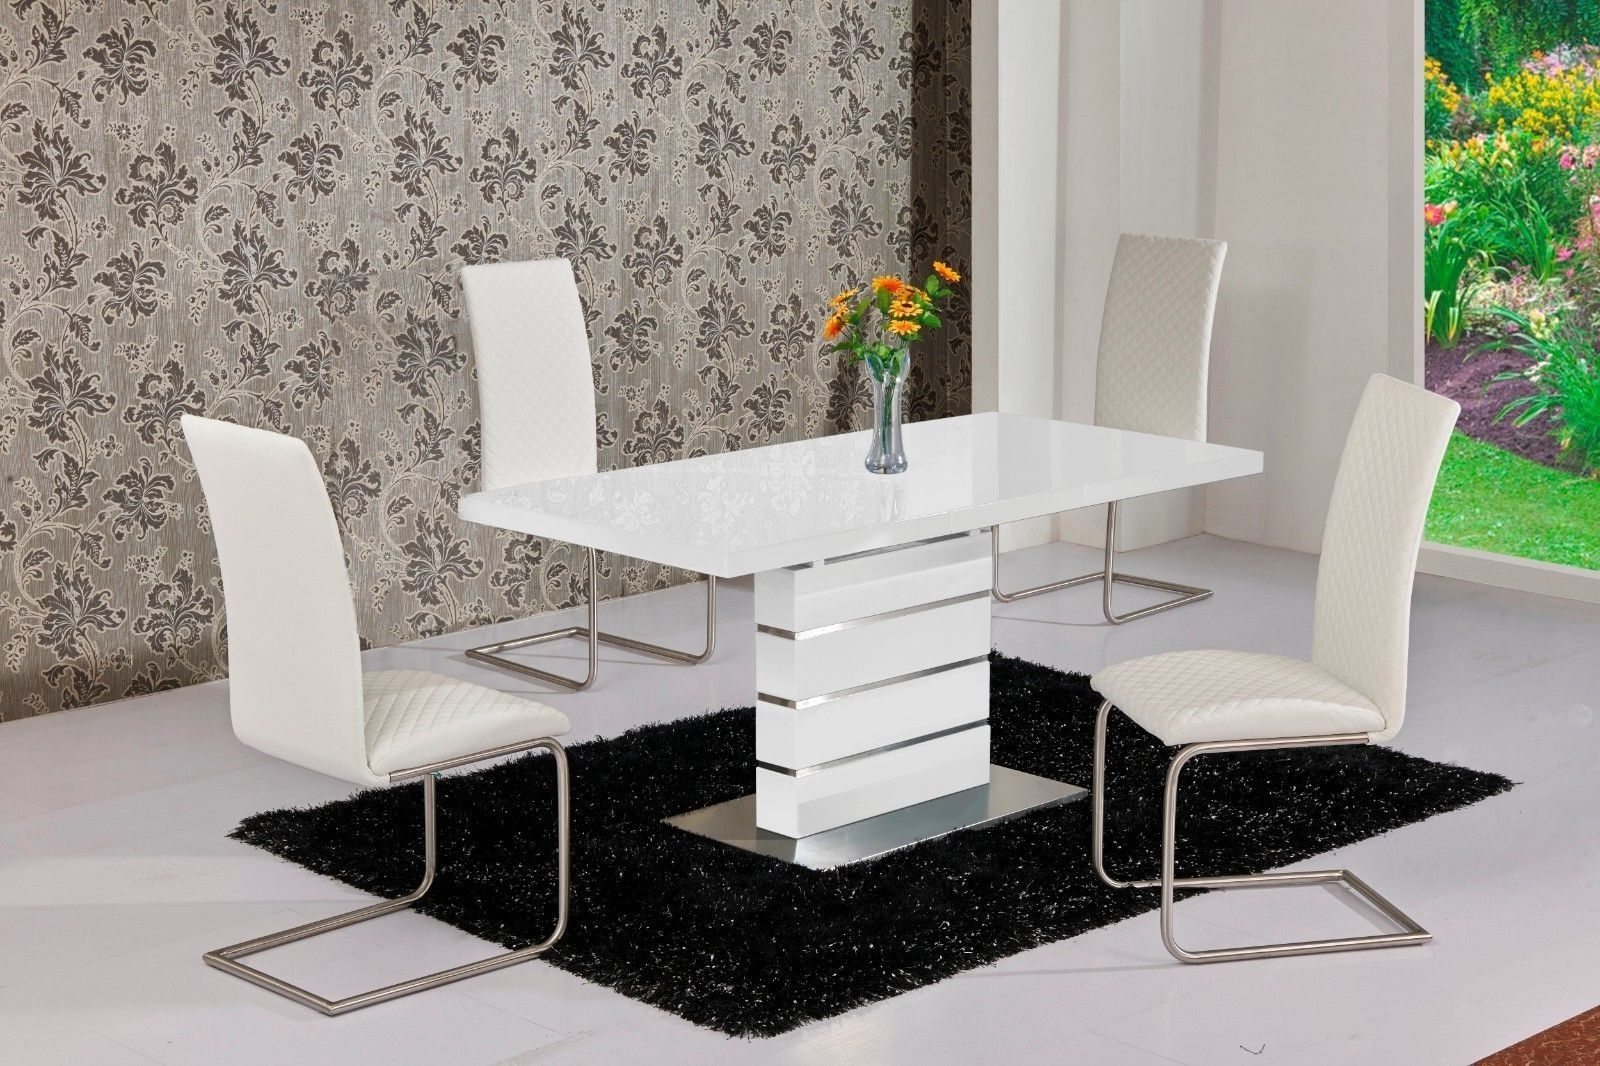 Latest Extendable Glass Dining Tables And 6 Chairs Pertaining To Mace High Gloss Extending 120 160 Dining Table & Chair Set – White (View 15 of 25)